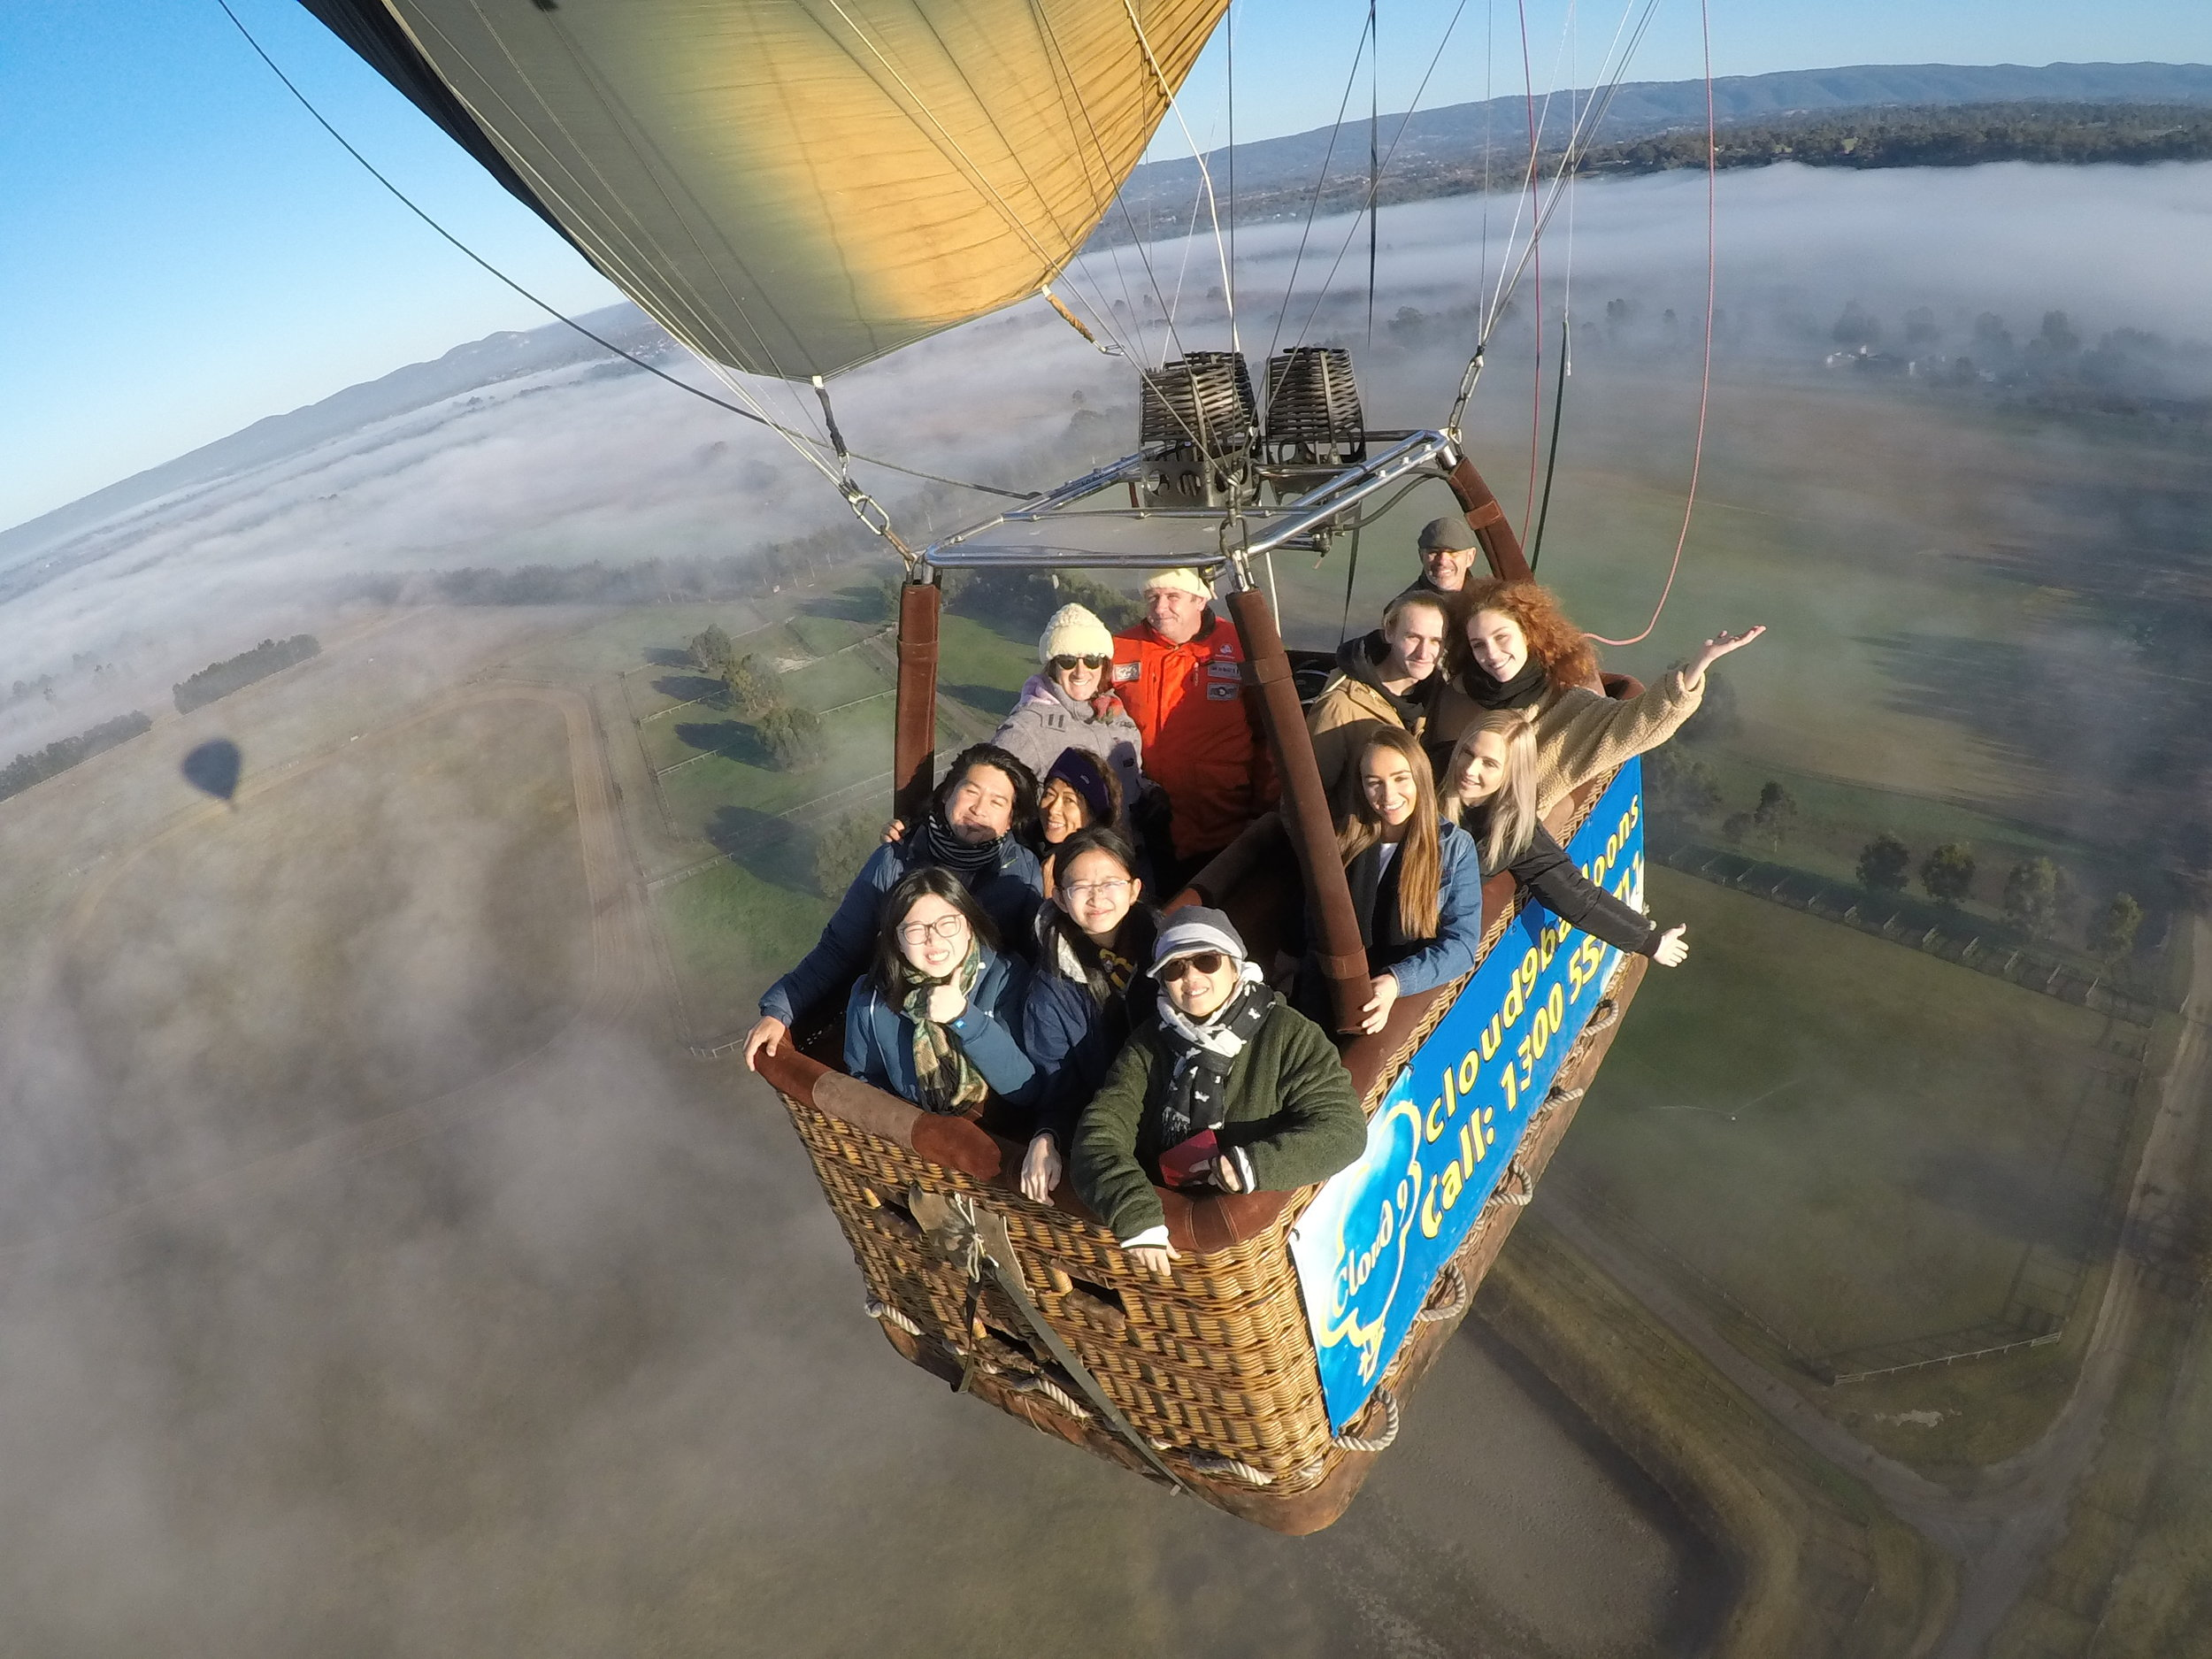 Whatever the occasion, a balloon flight makes a great gift